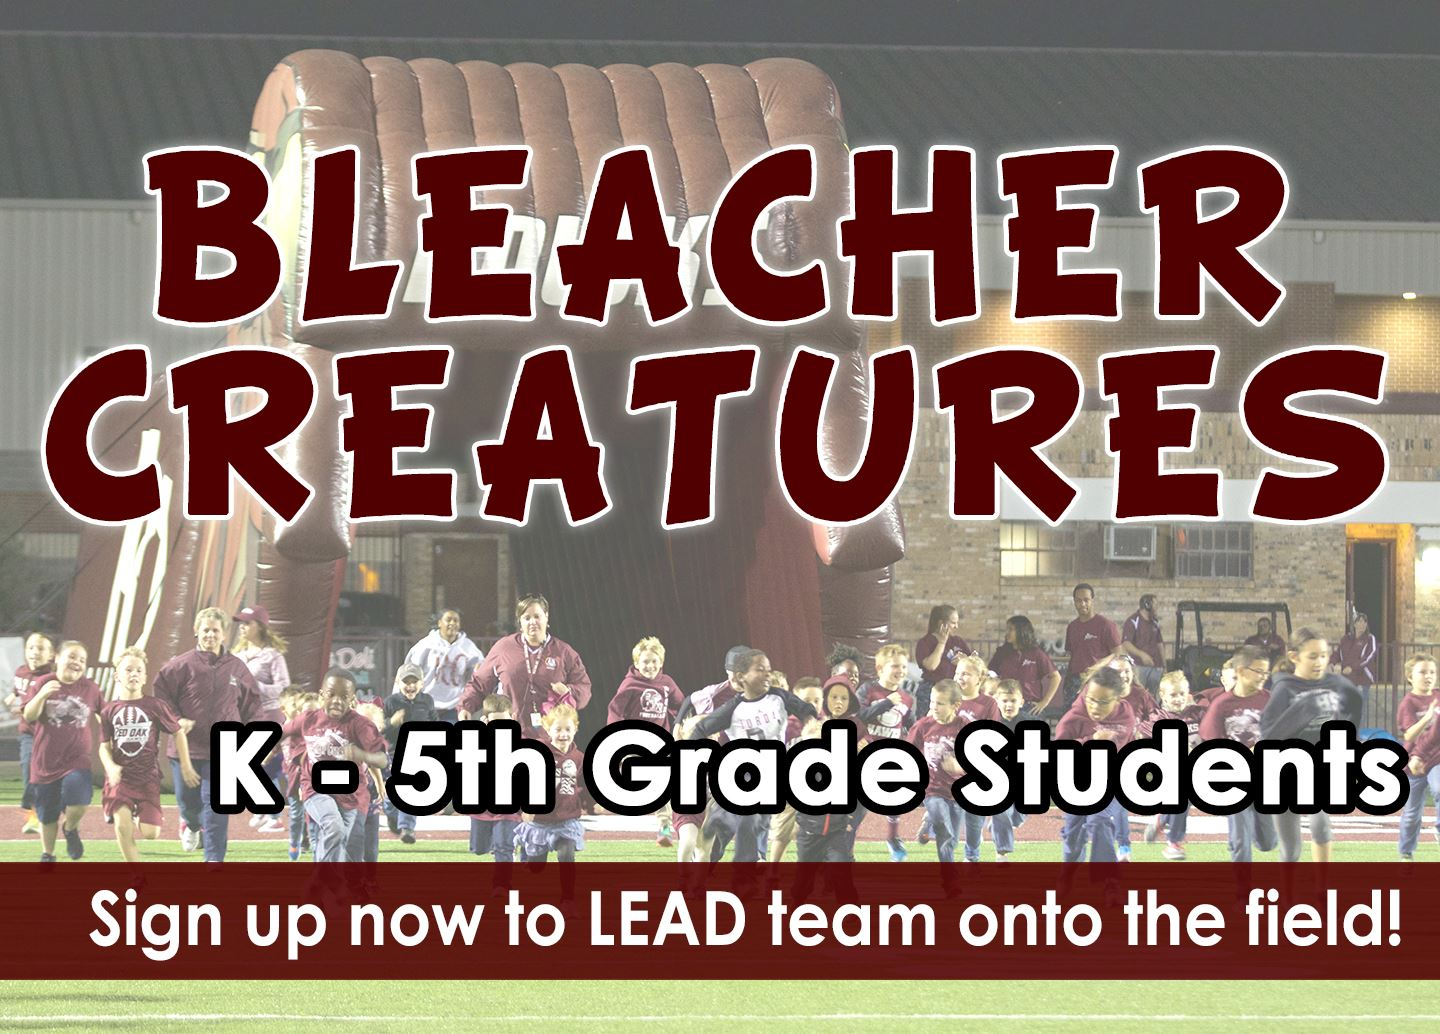 Bleacher Creatures: K-5 grade students sign up to lead team onto the field!